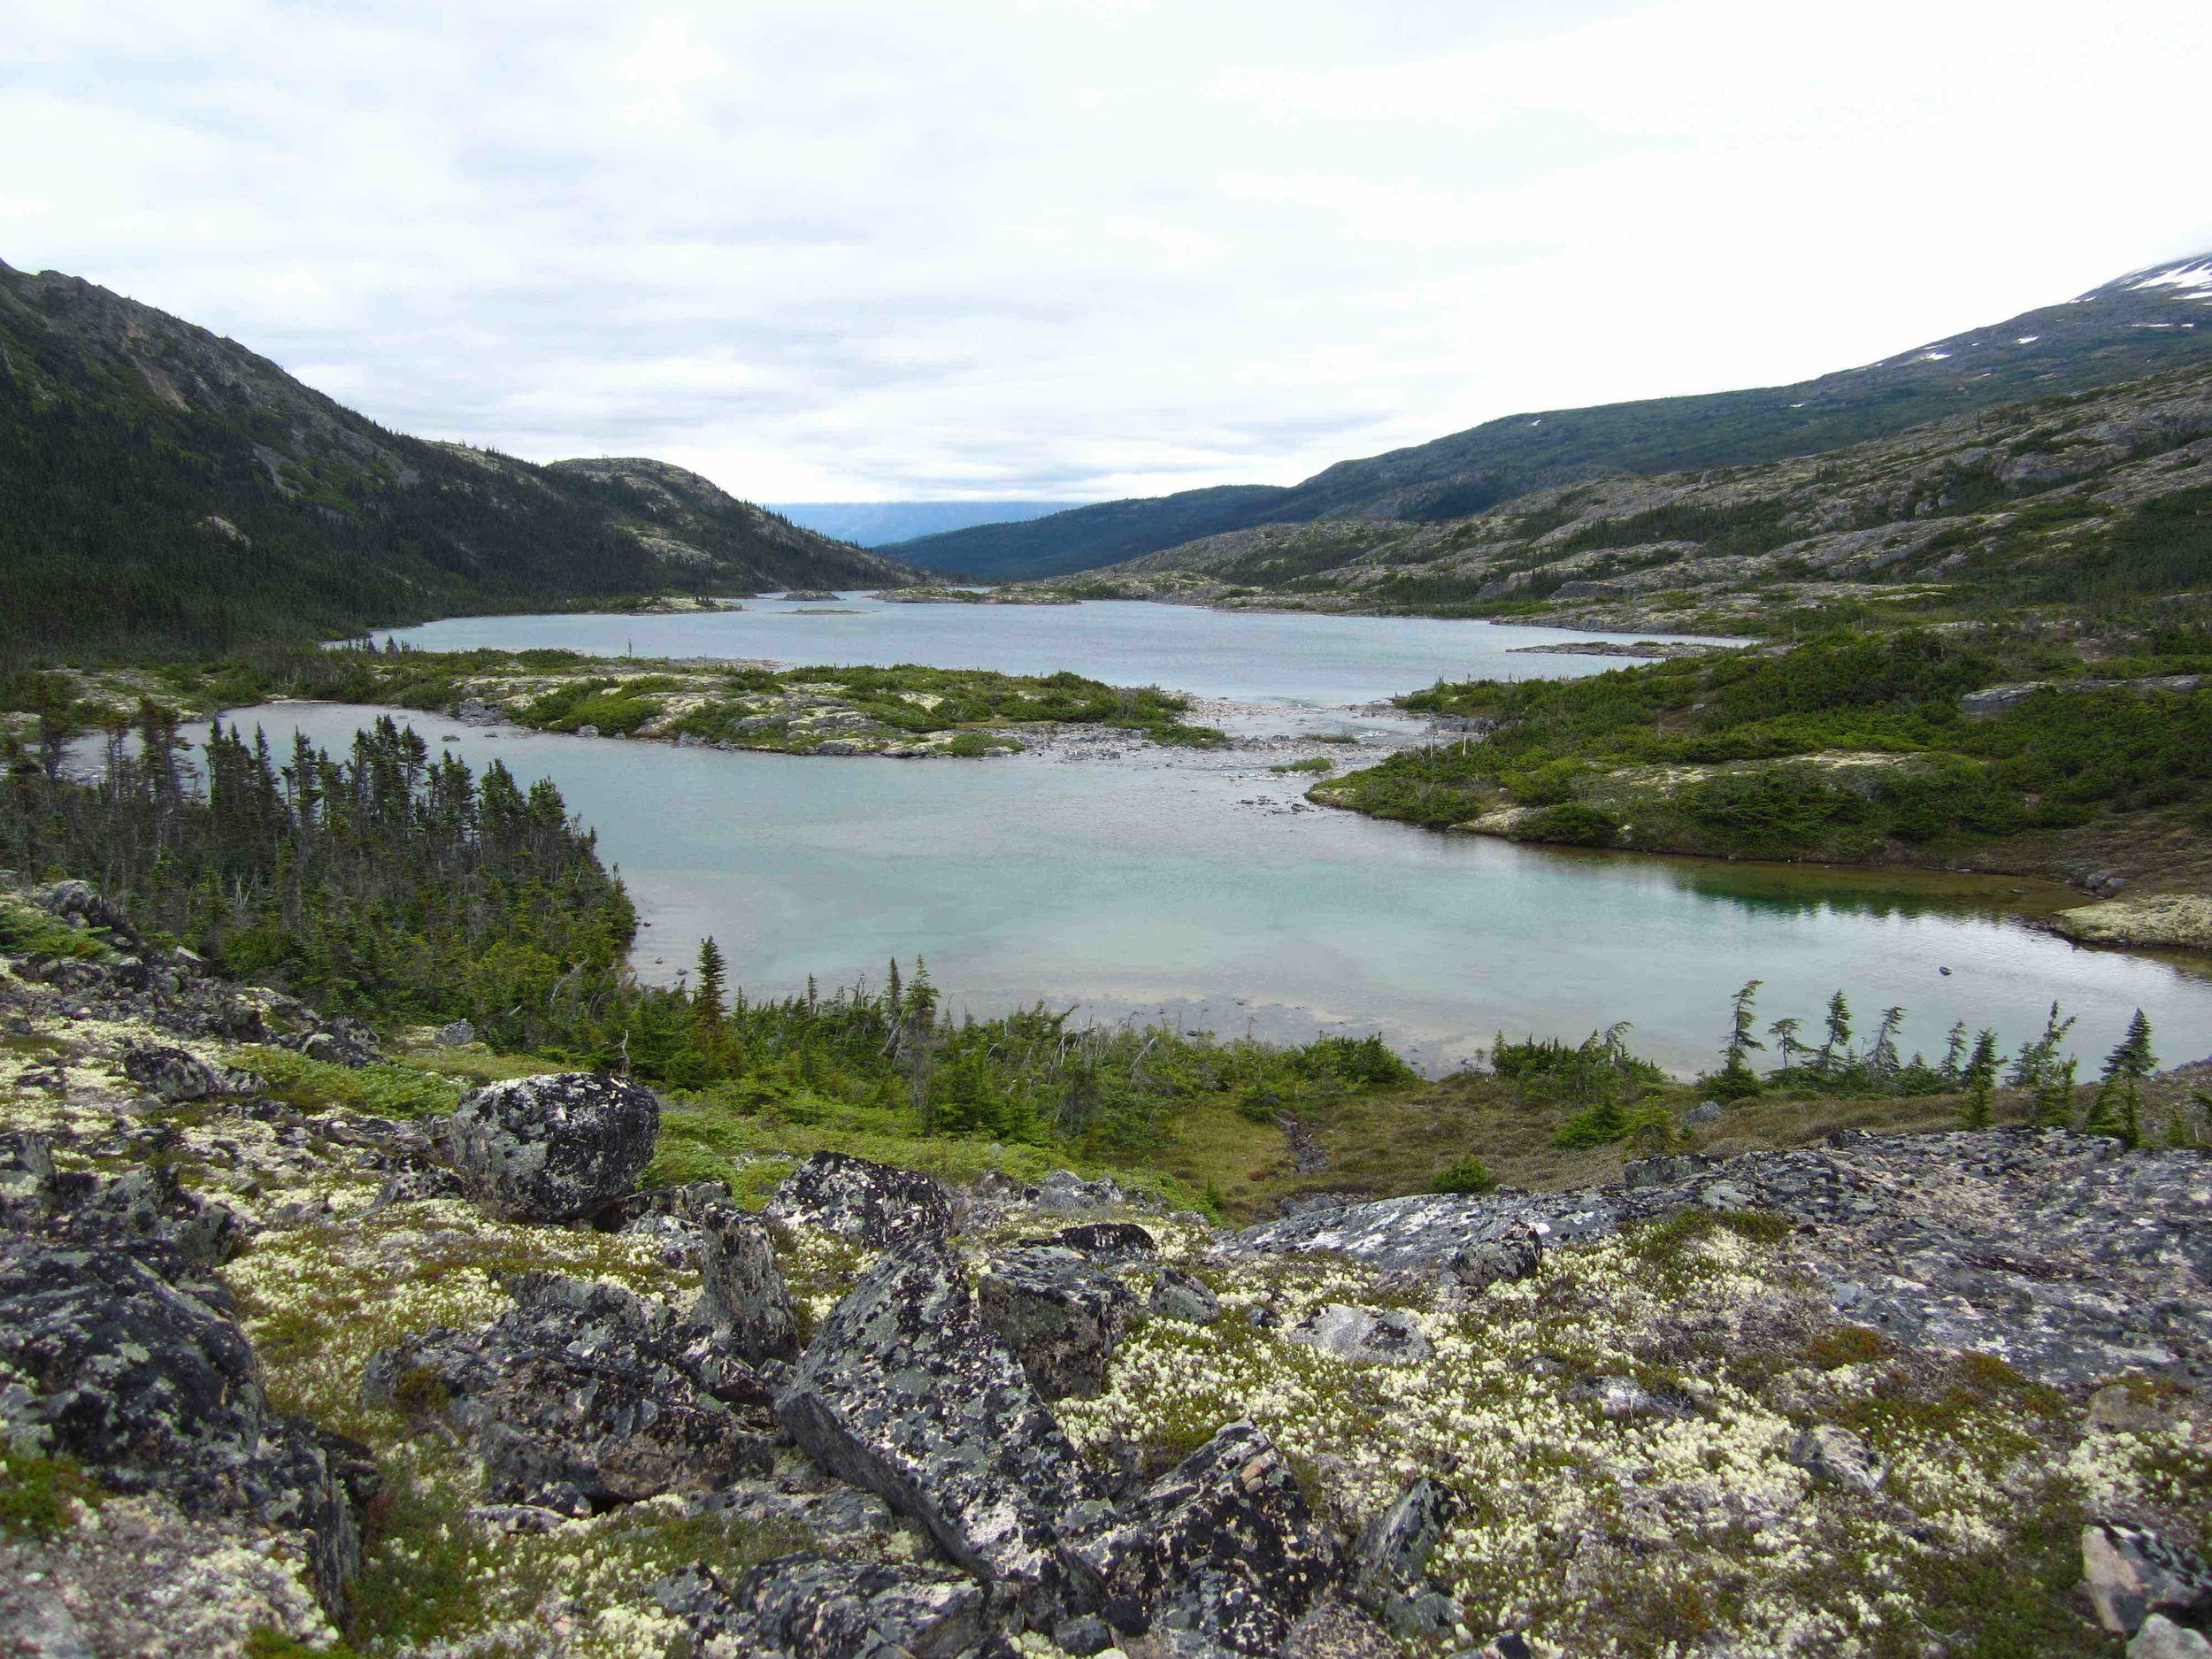 Entering the boreal forest area on the Canadian side.